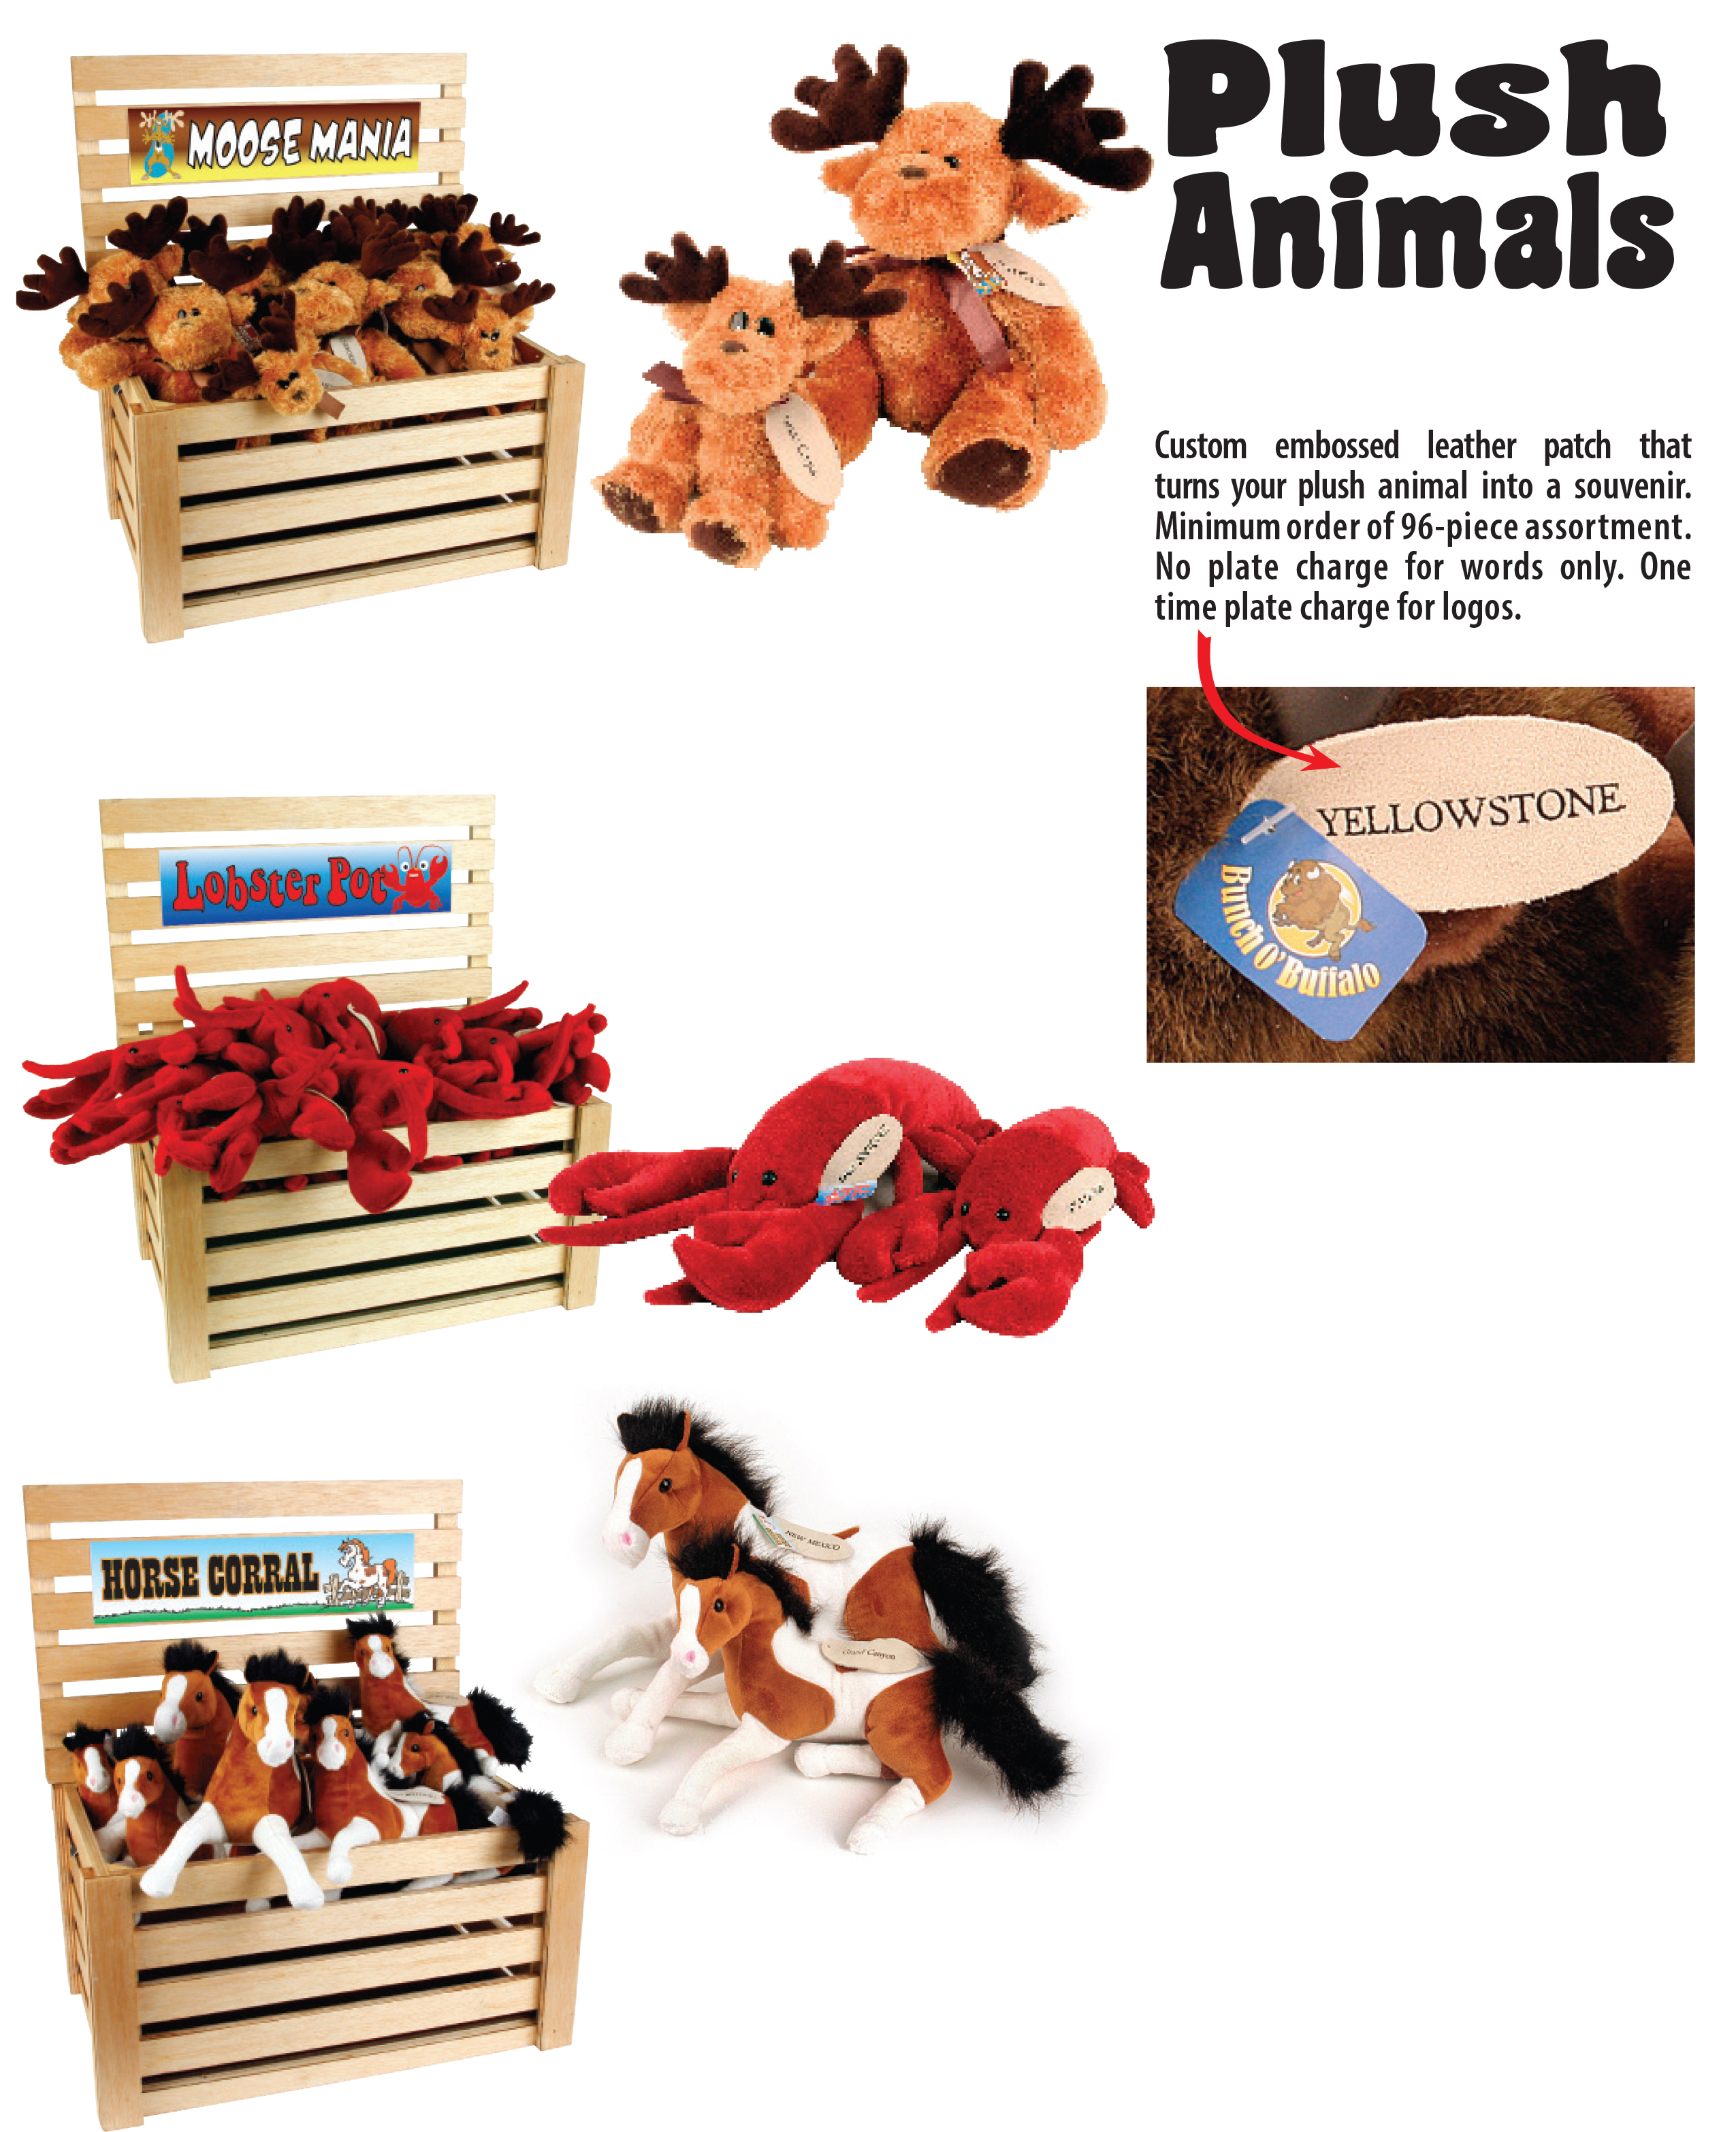 Stuffed Animals Ad